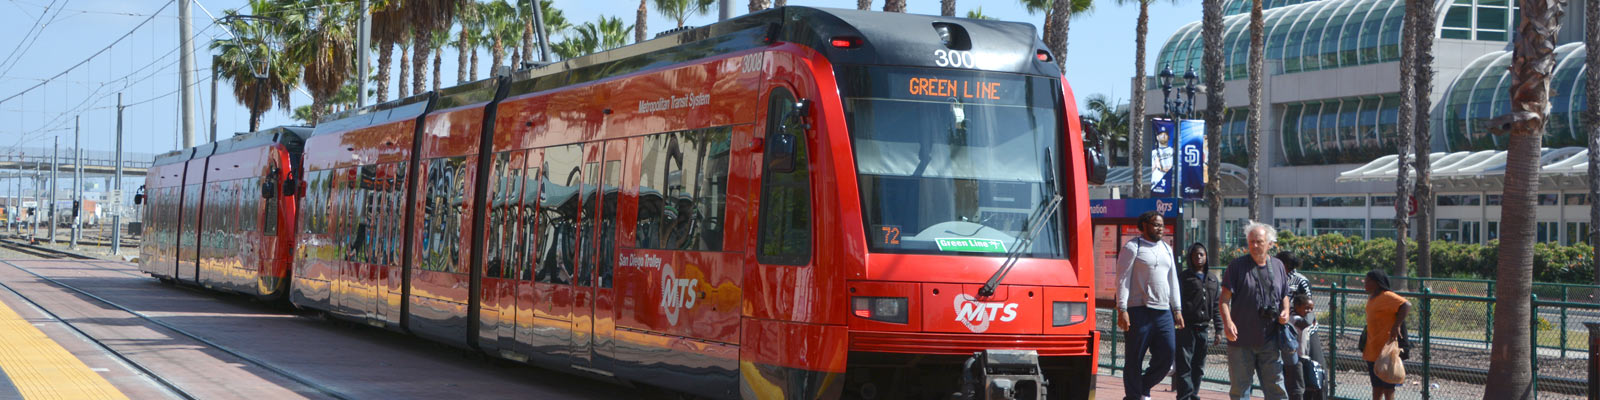 This is an image of the tram in San Diego. ASTA-USA offer professional translation services in this city.